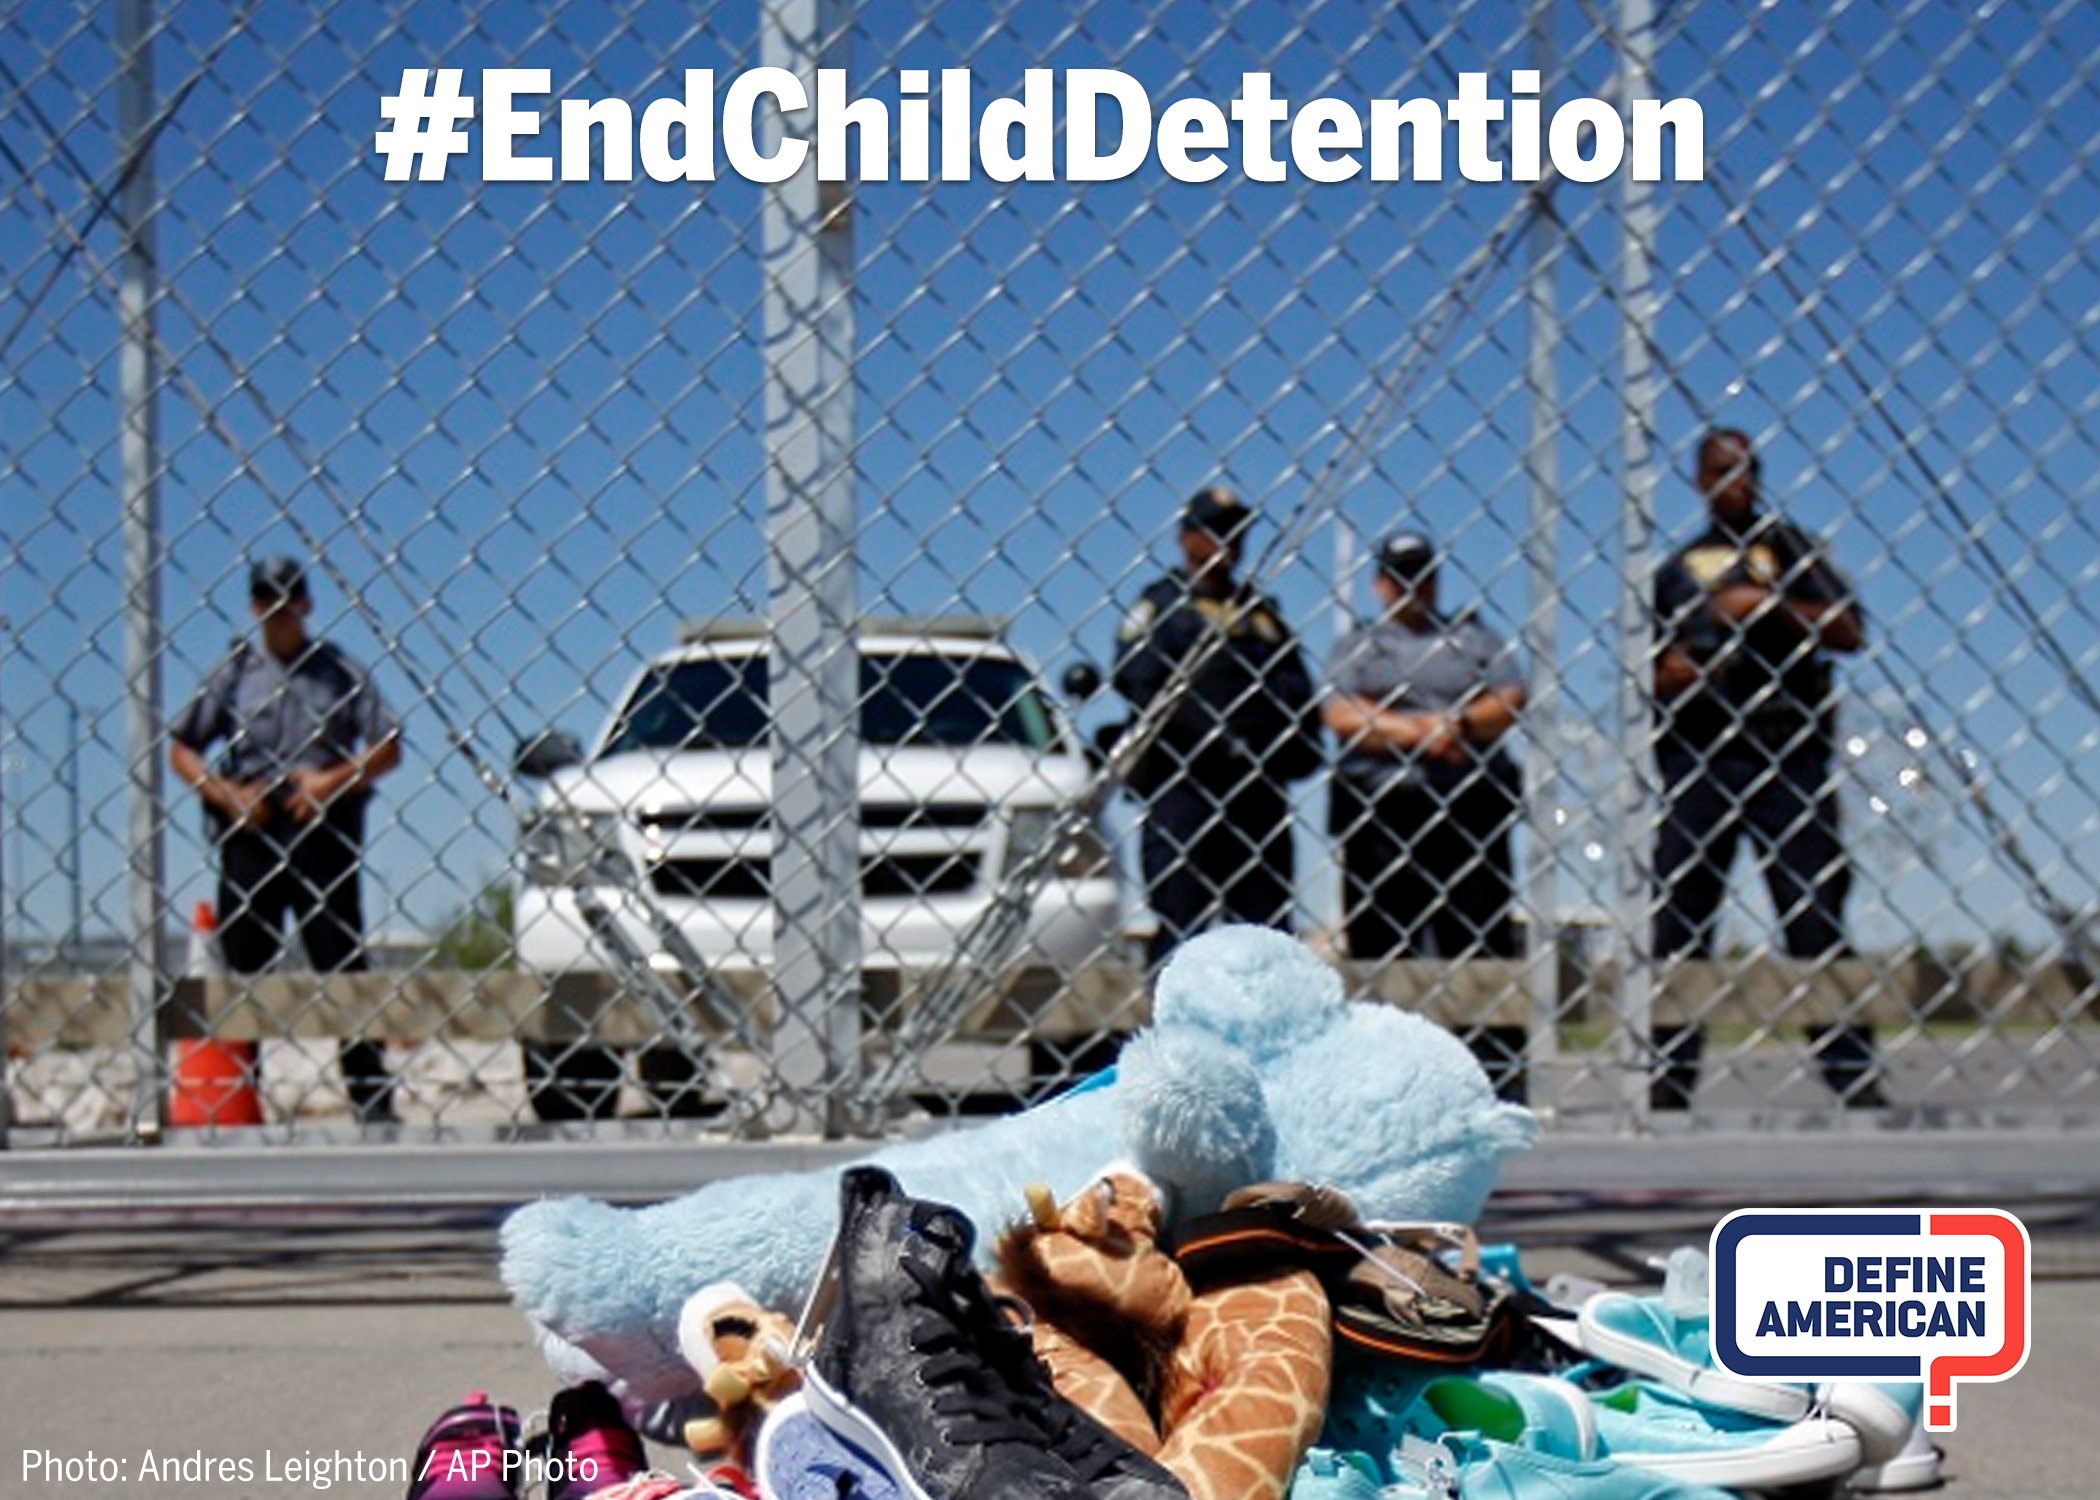 #EndChildDetention